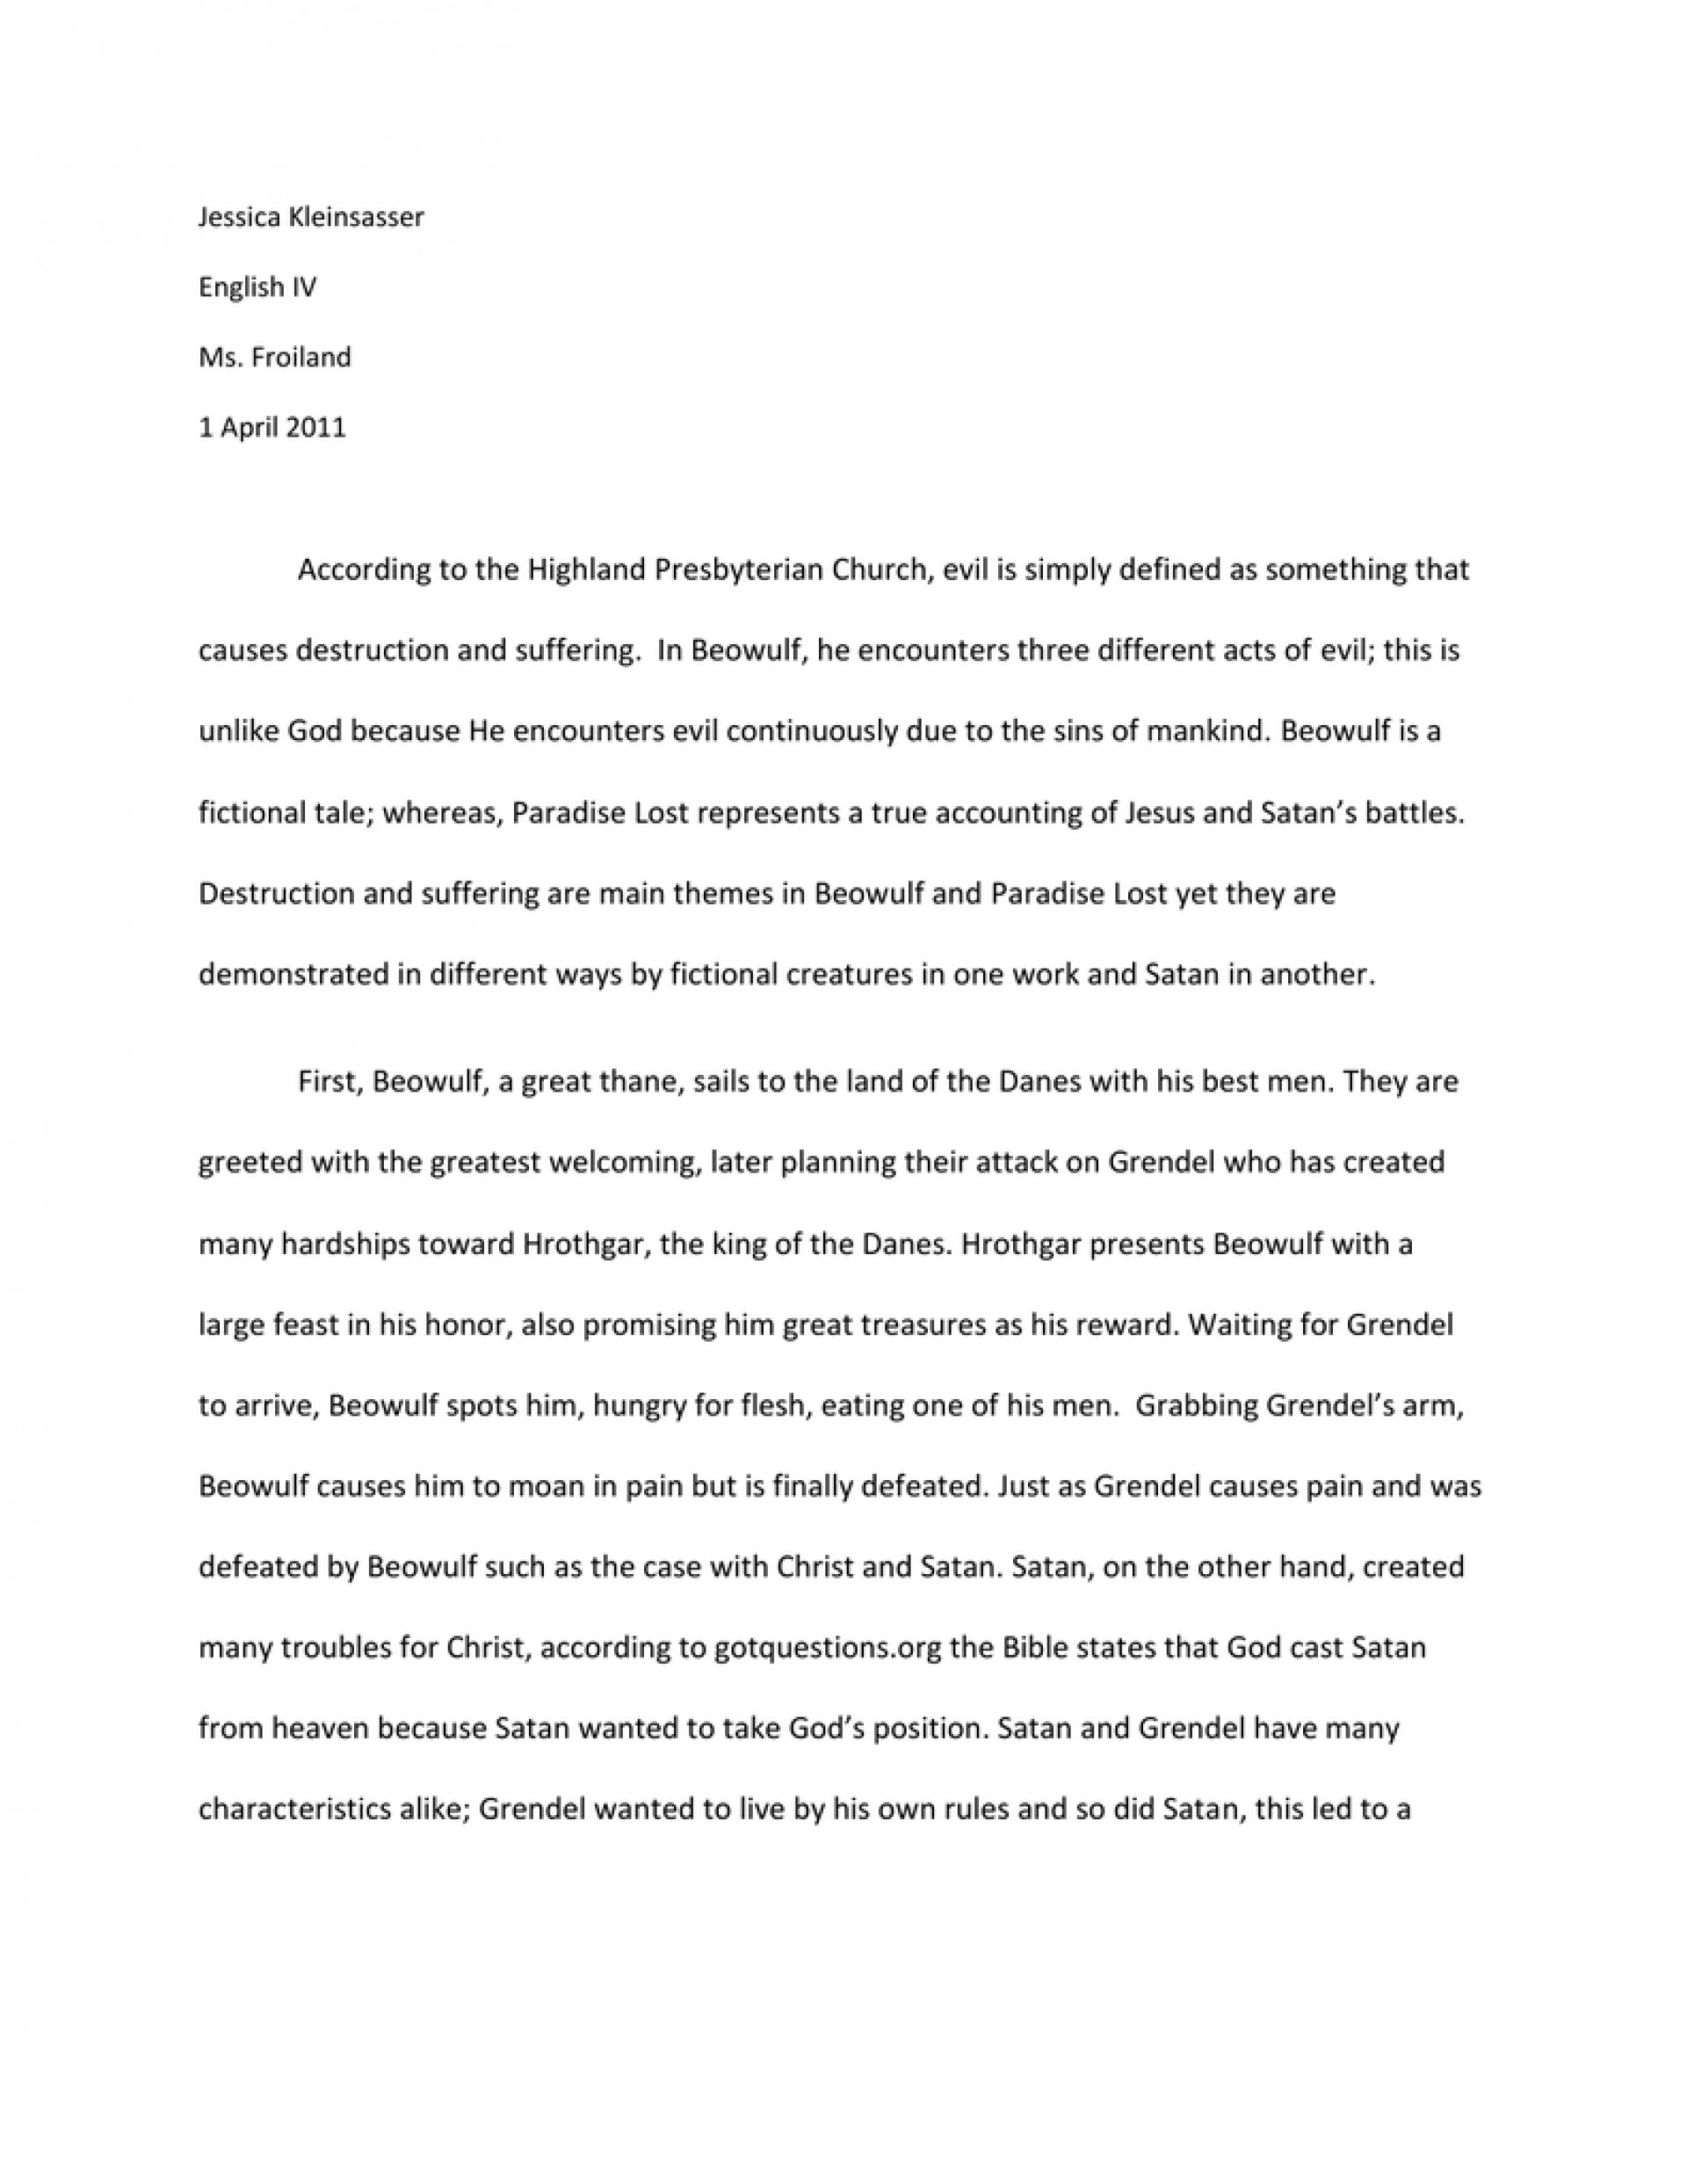 016 Persuasive Essay Topics High School Example Beowulf Argumentative Poemdoc Or For Pdf 009901492 1 Middle With Articles Exceptional Interesting Students Research Paper Prompt 1920